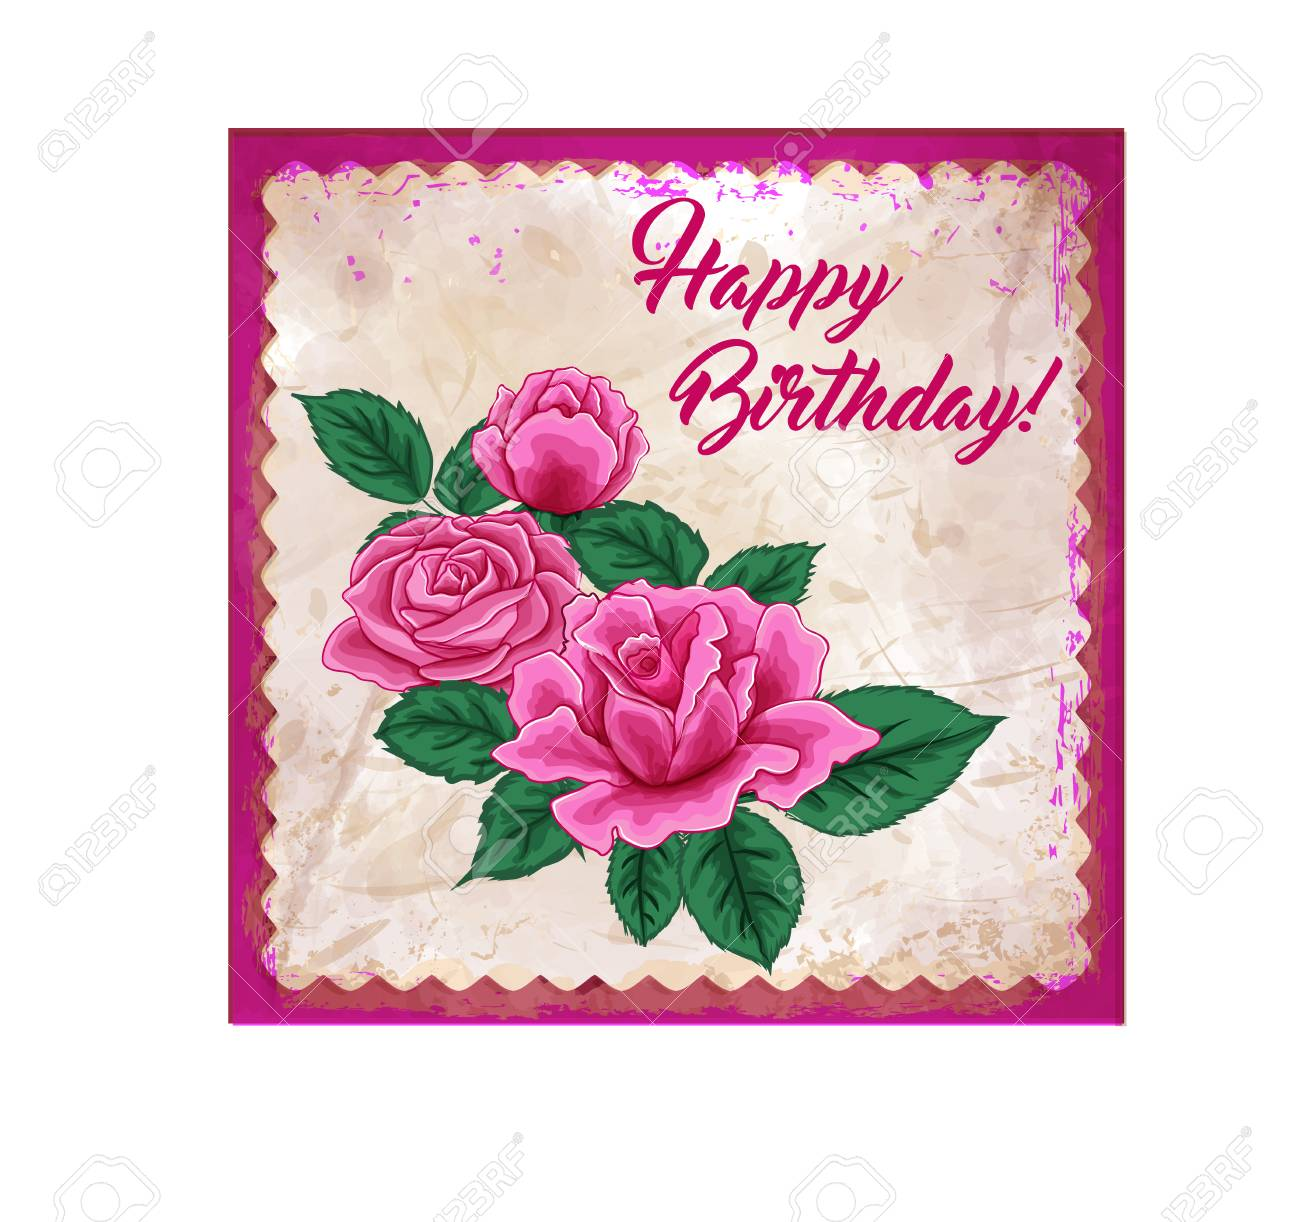 Happy Birthday Card Beautiful Roses Bouquet Drawing On Pink Grunge Background Stock Vector